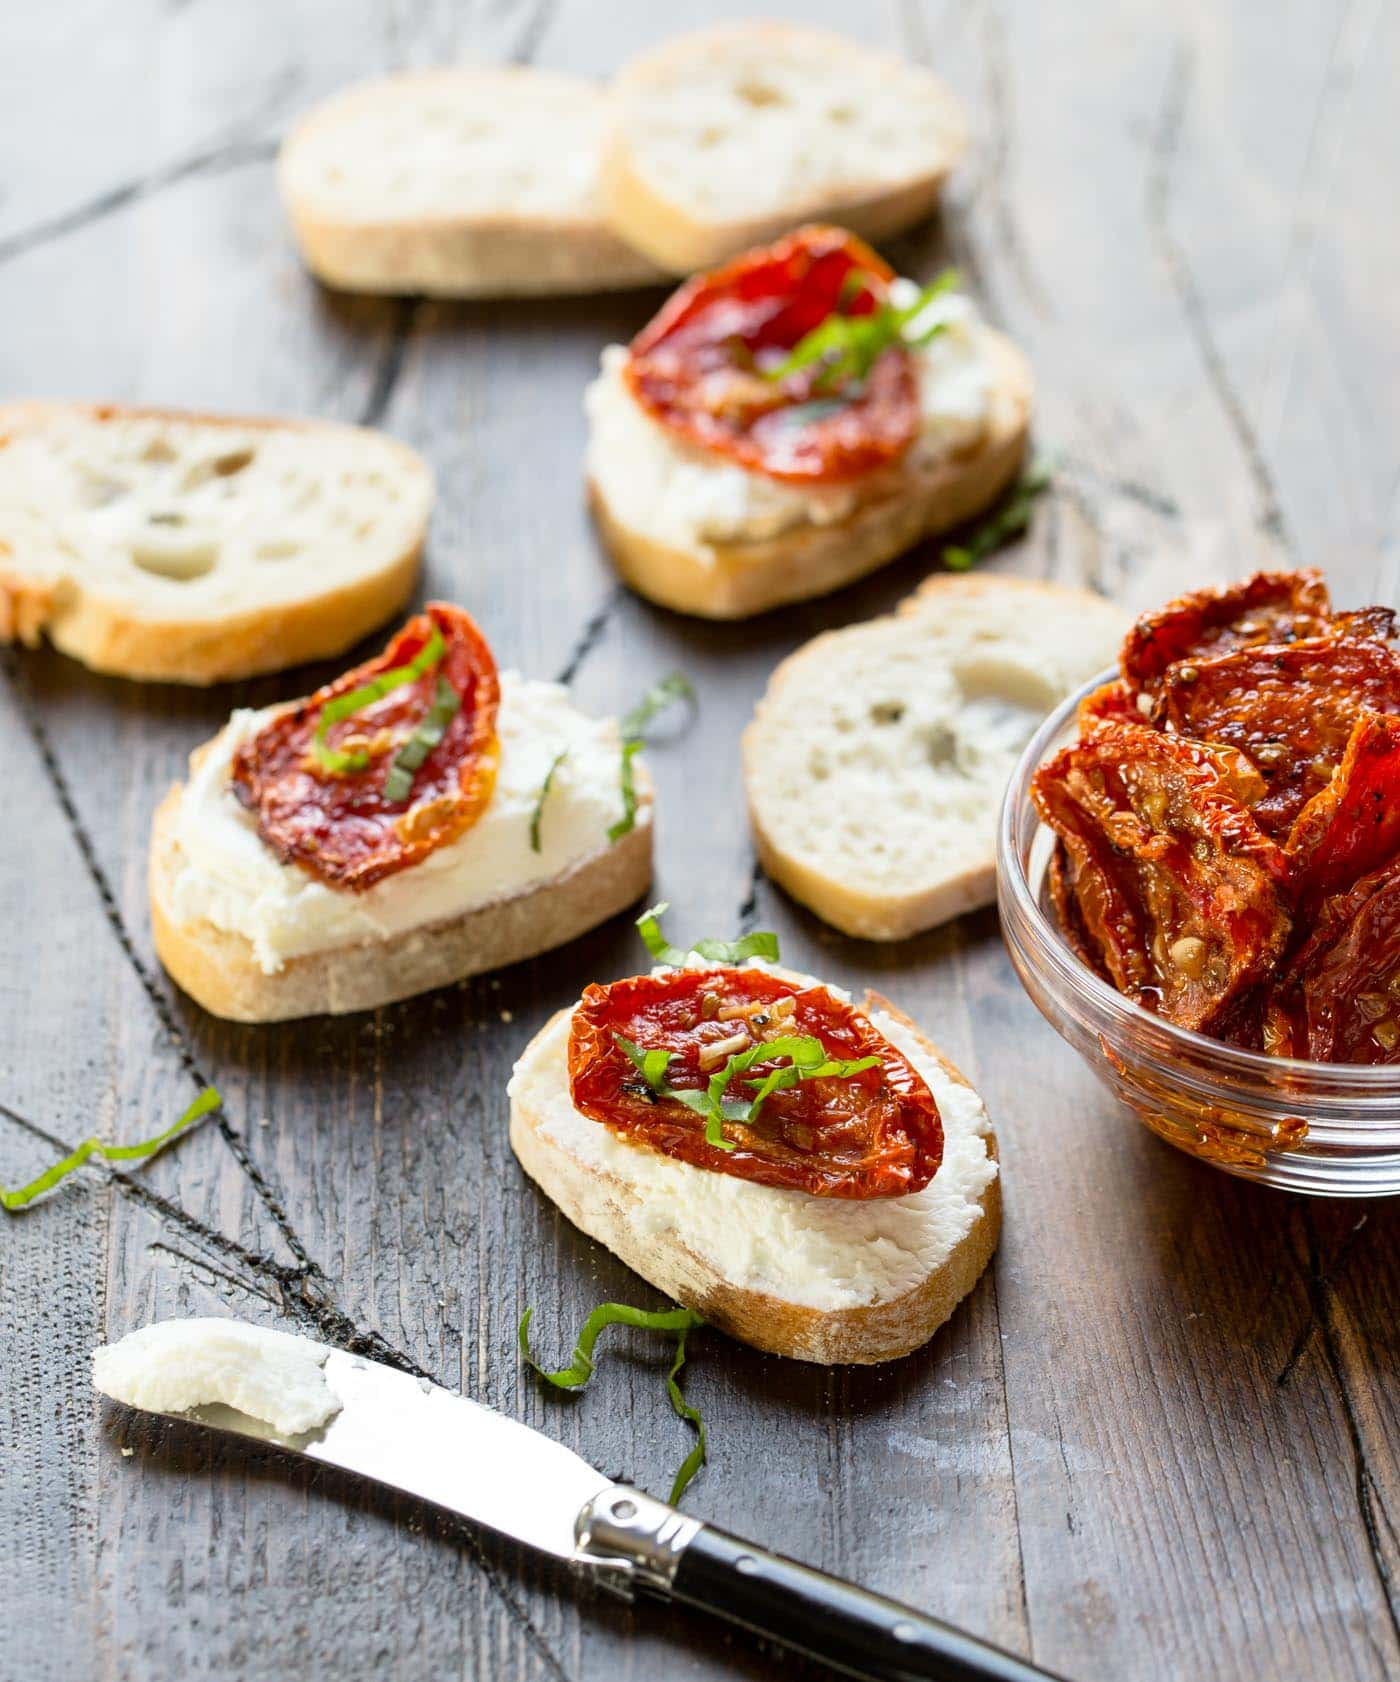 Slices of bread with roasted tomatoes.